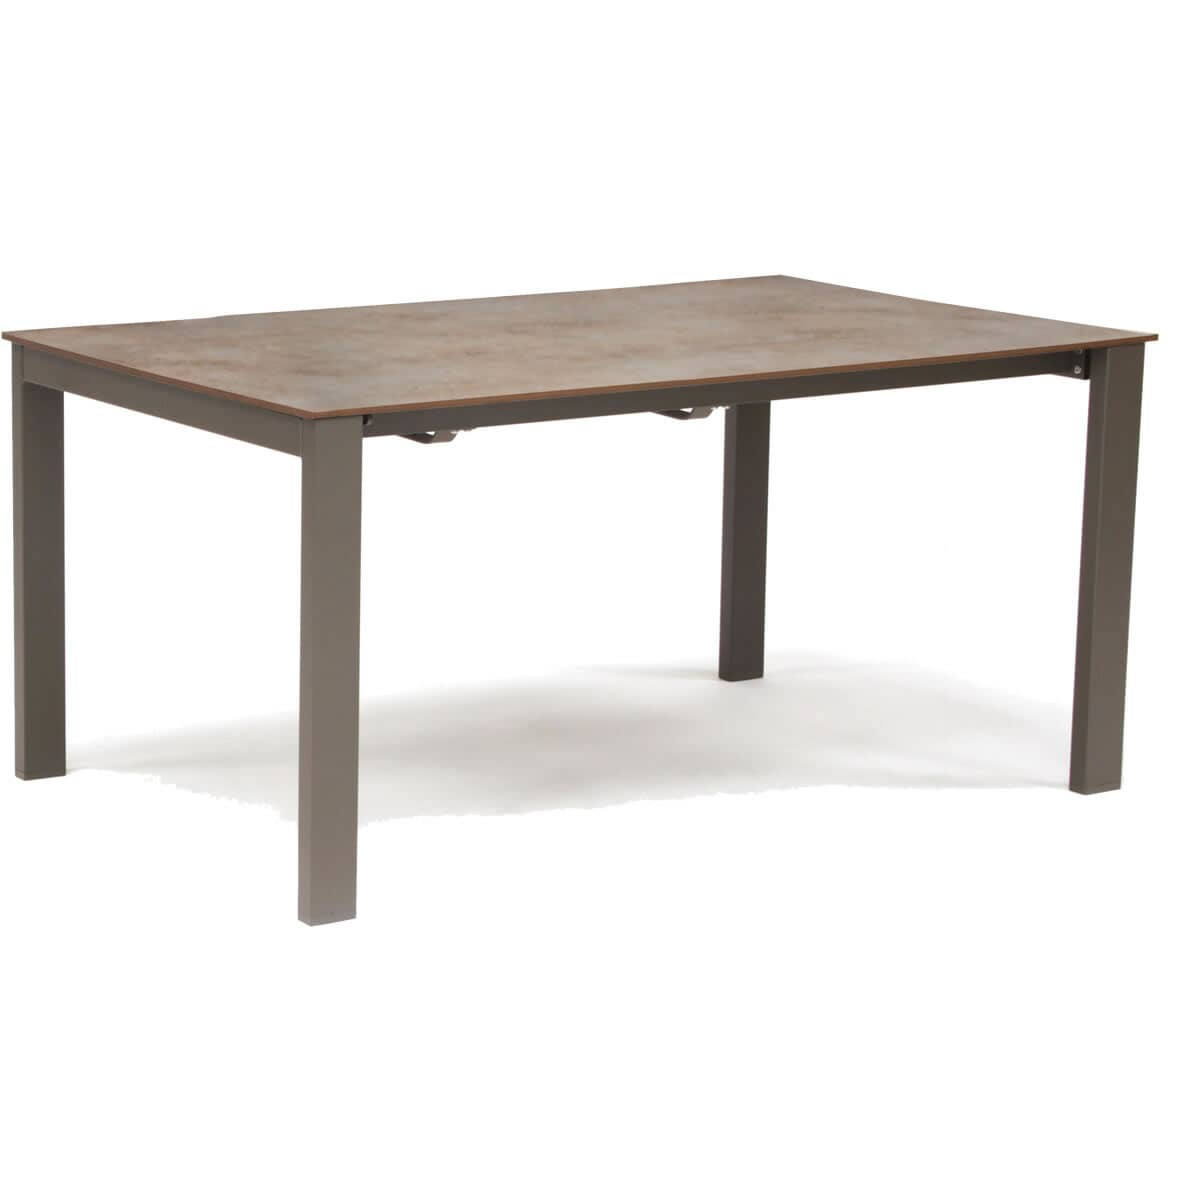 Milano extending hpl loft table taupe n0496 9313 for Furniture world